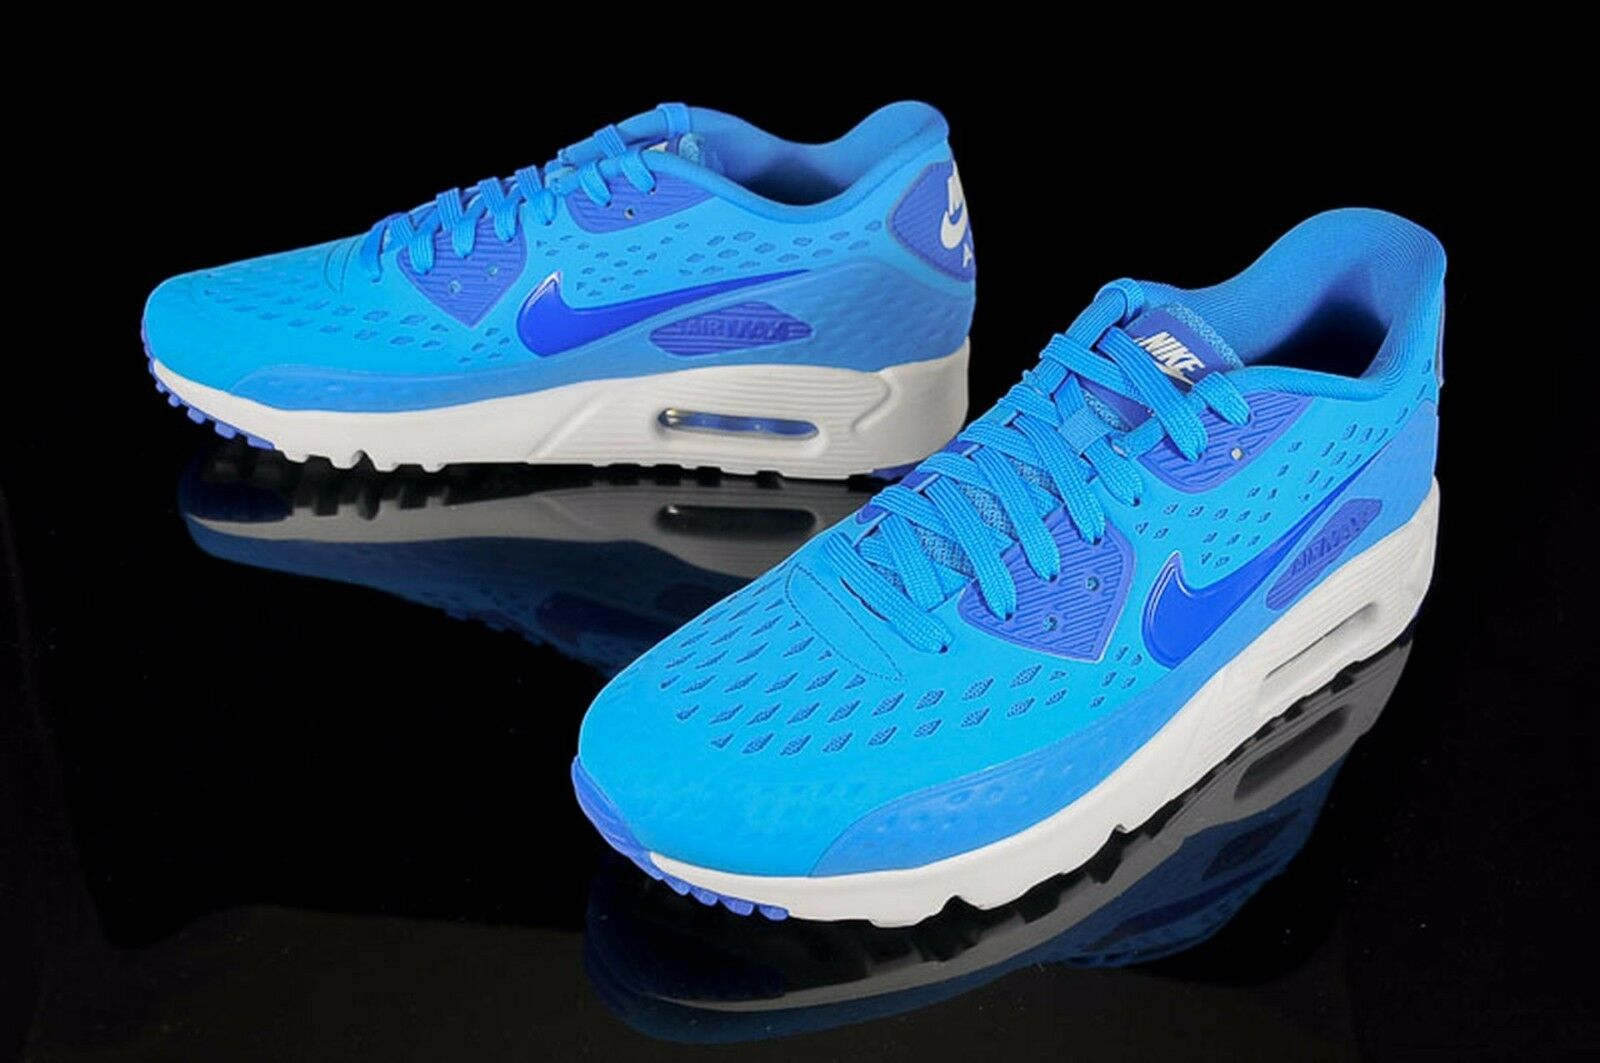 Nike Air Max 90 Ultra Br Mens size 11 725222-404 Photo Blue/Game Royal/White